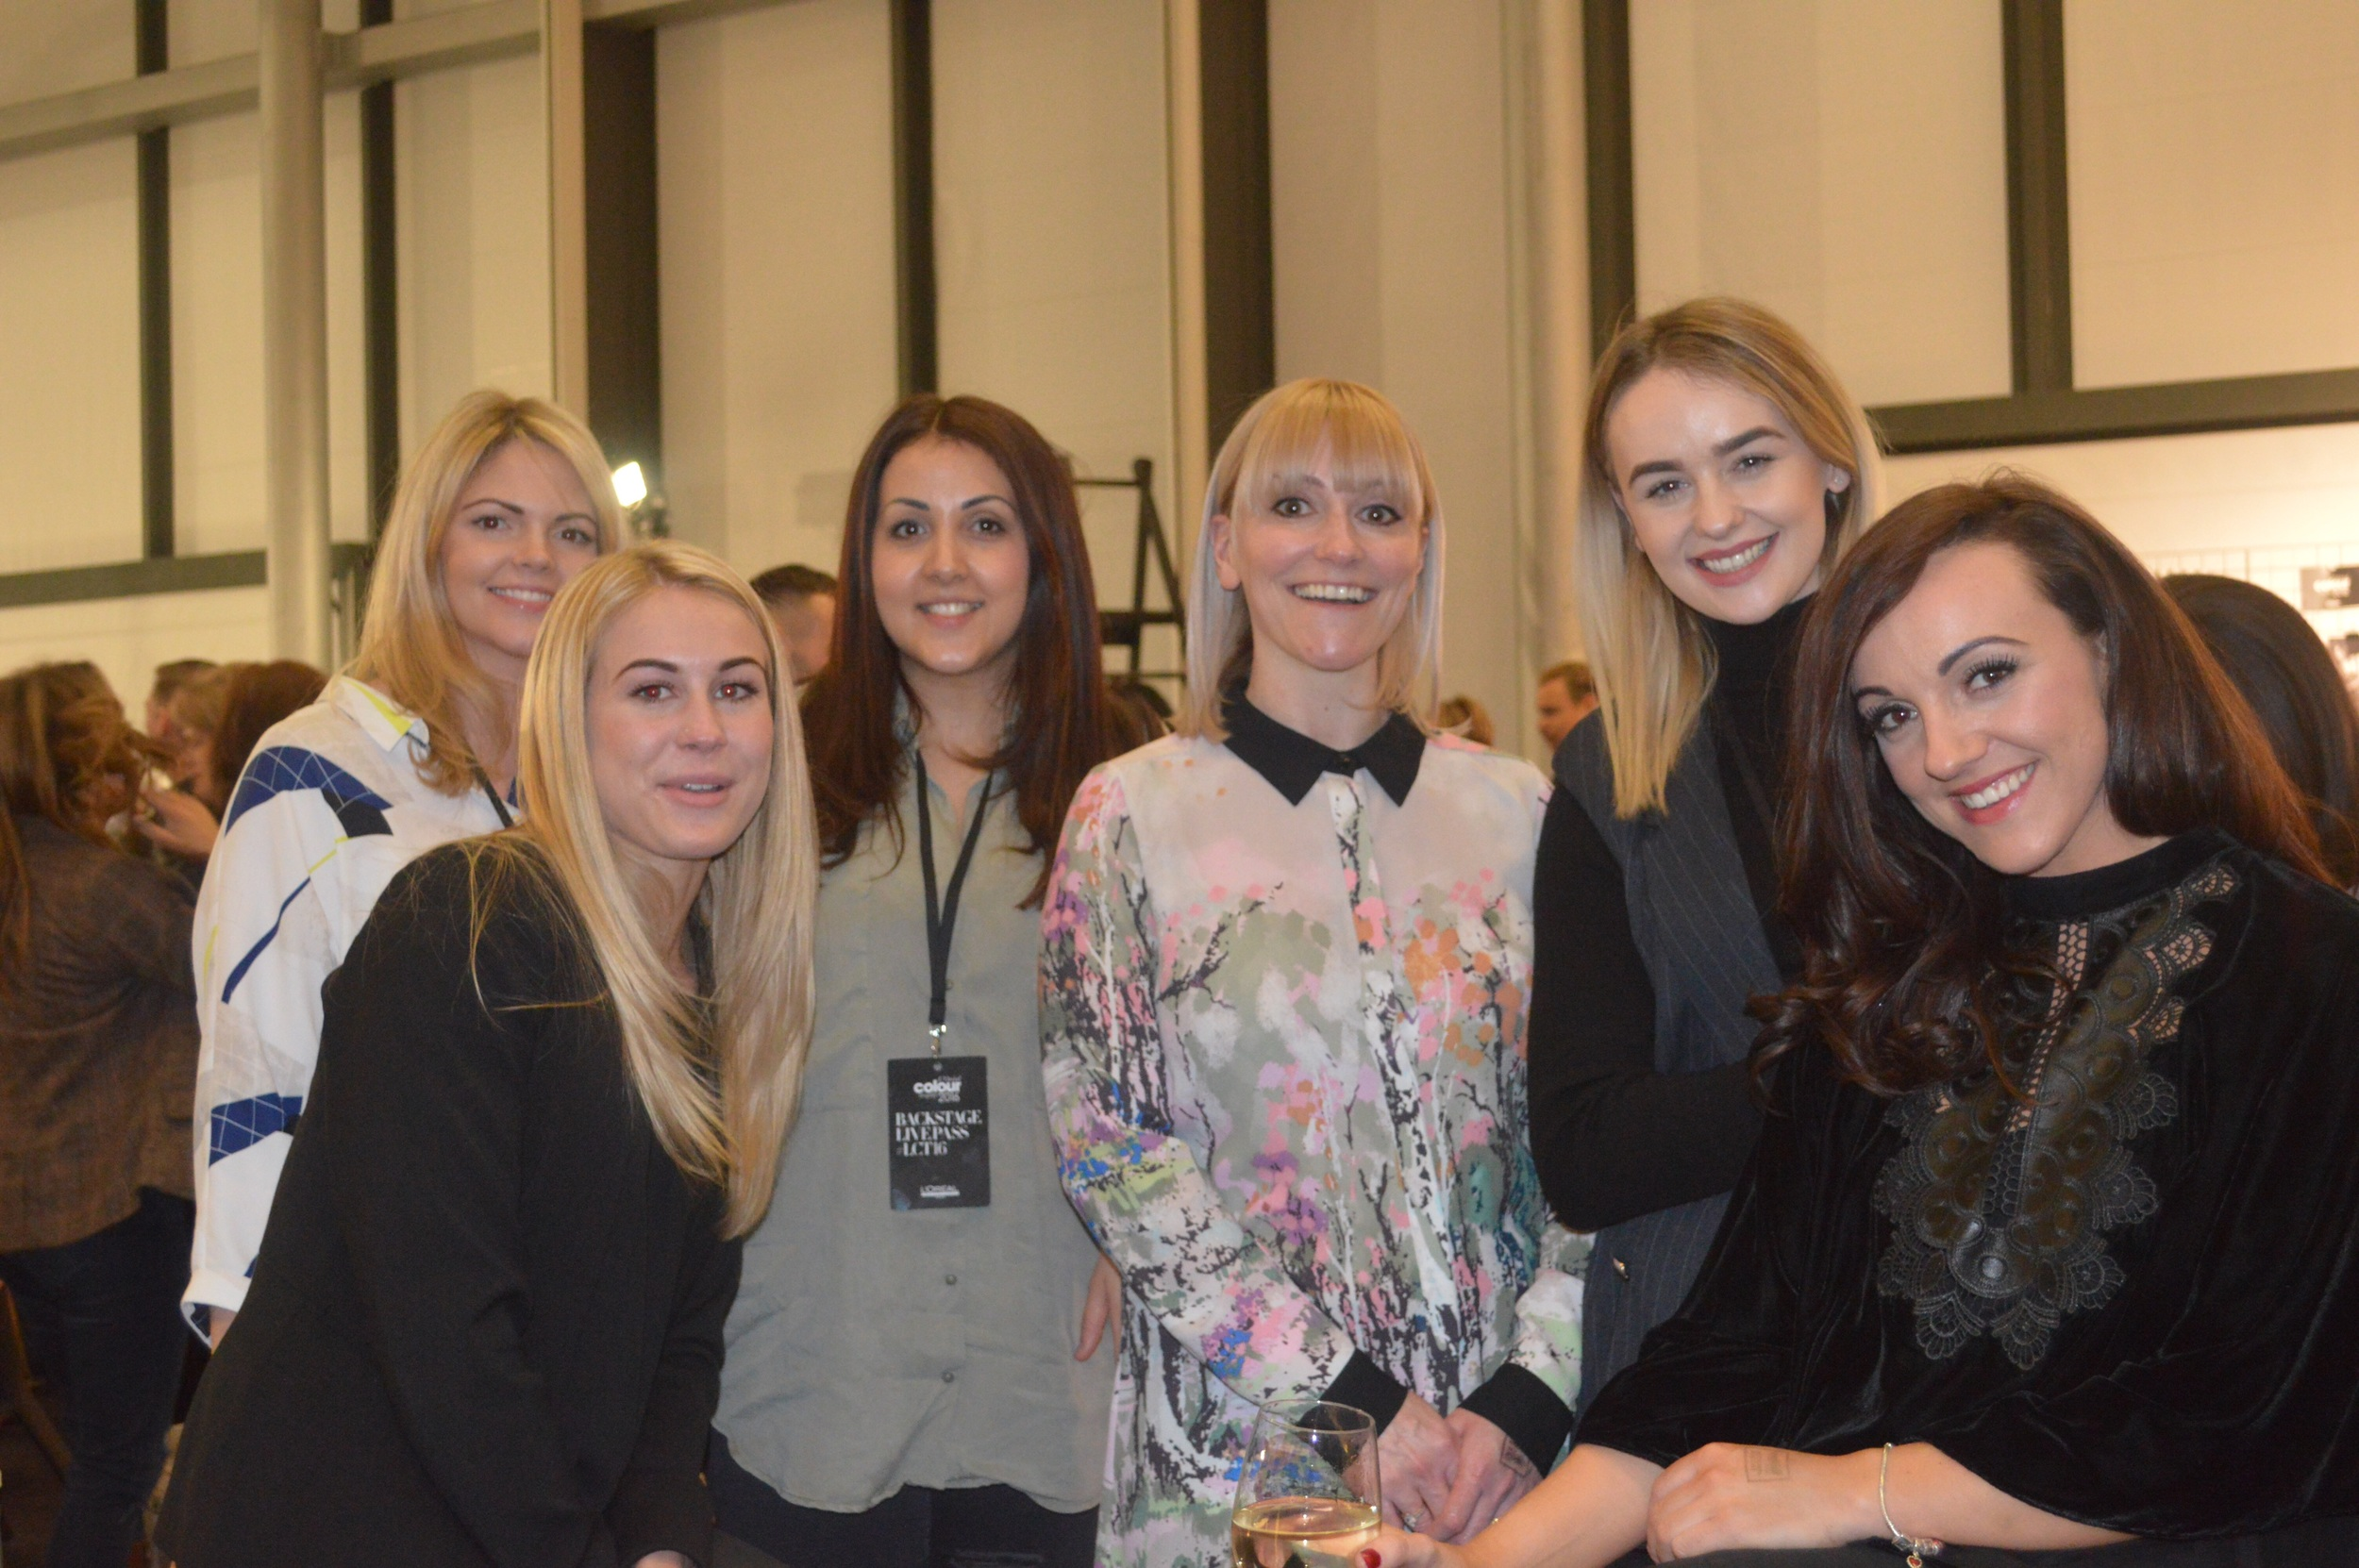 #hhsliverpool's style team with Liverpool model Carly Gordon.